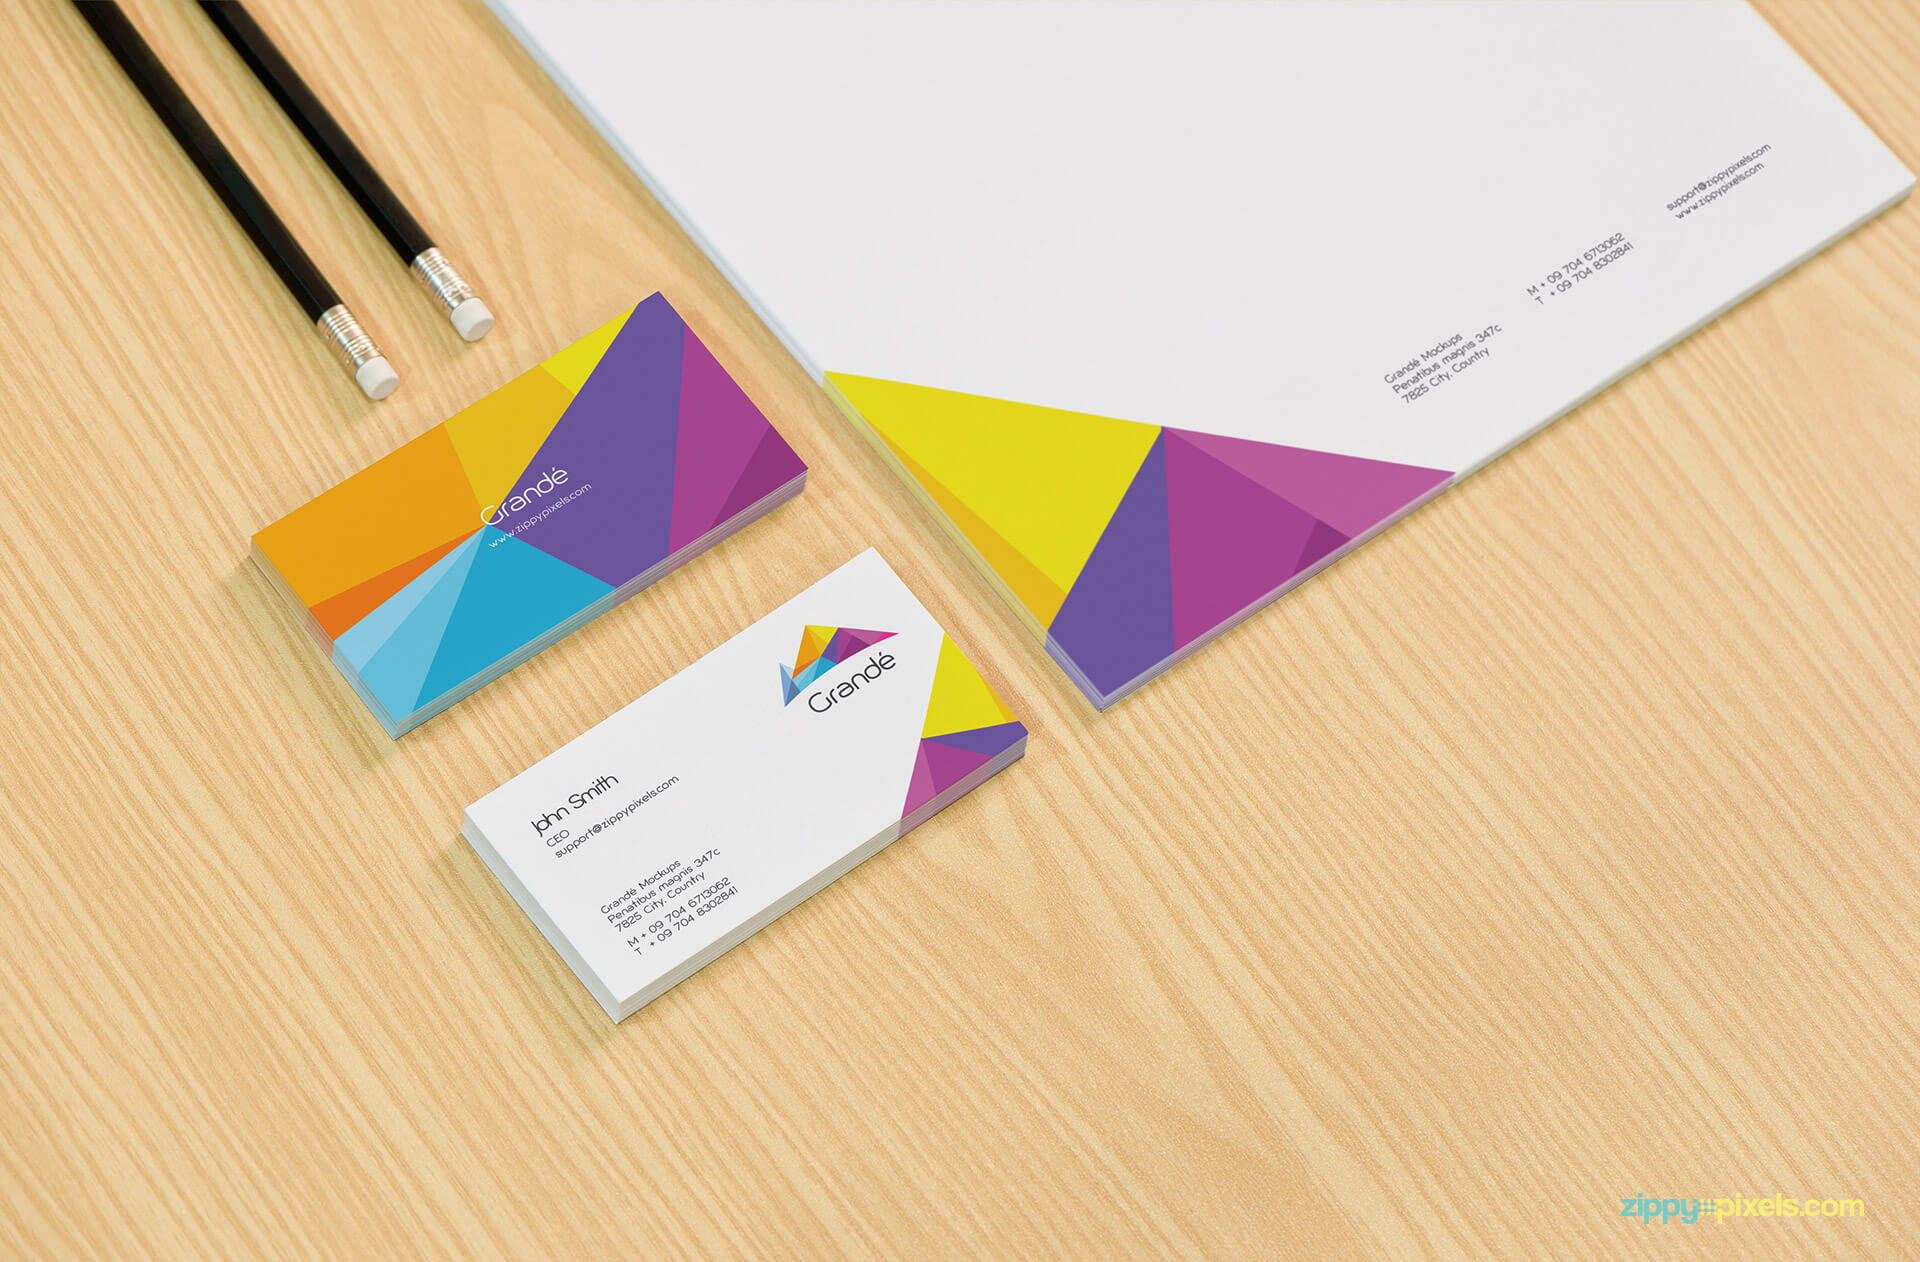 Stationery Branding Mockup of Business Cards & Letterhead